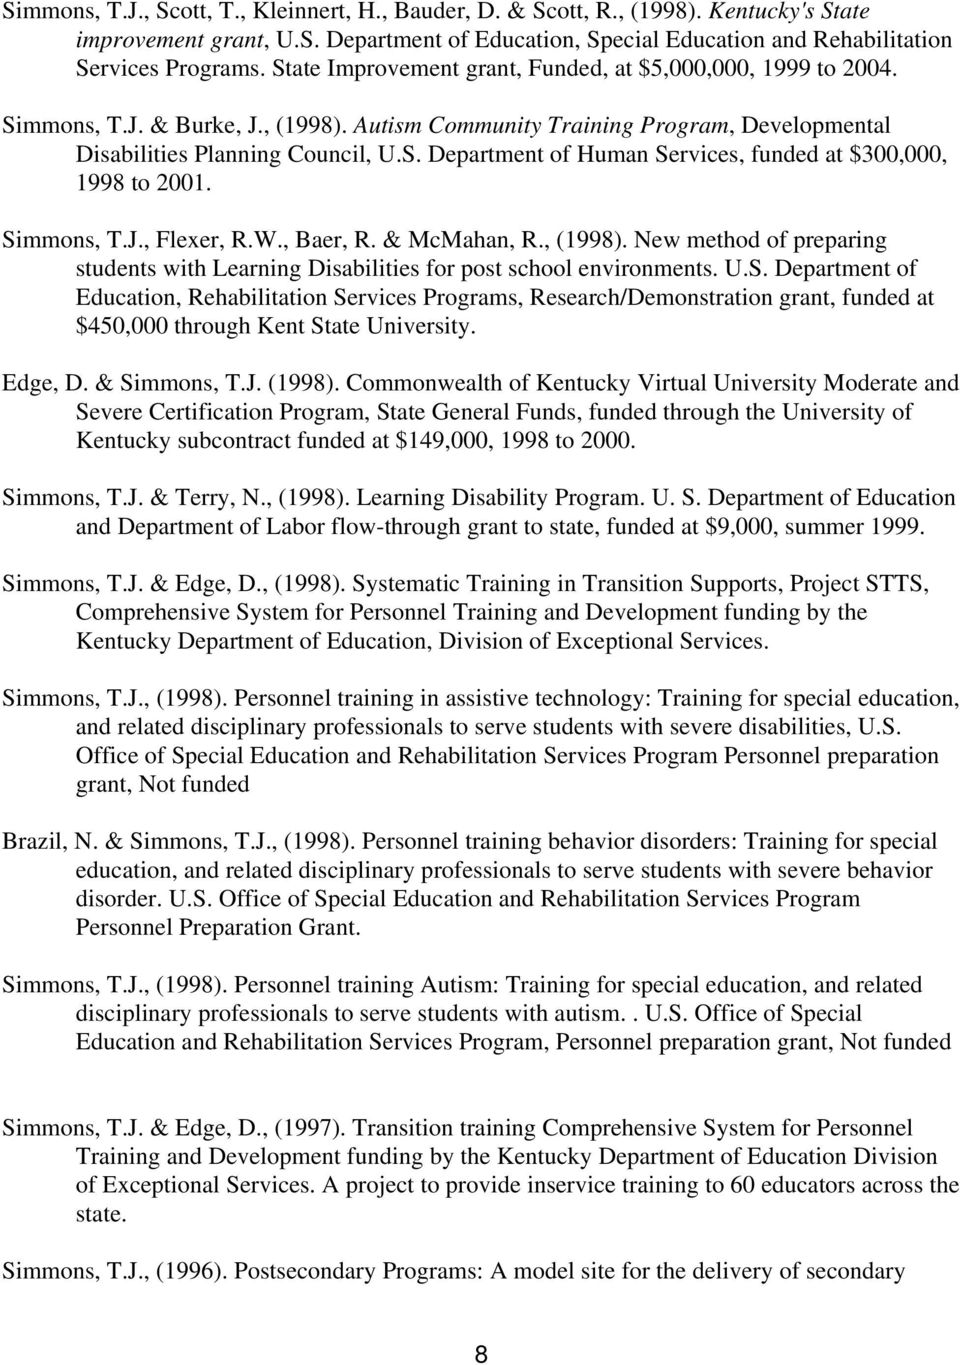 Simmons, T.J., Flexer, R.W., Baer, R. & McMahan, R., (1998). New method of preparing students with Learning Disabilities for post school environments. U.S. Department of Education, Rehabilitation Services Programs, Research/Demonstration grant, funded at $450,000 through Kent State University.